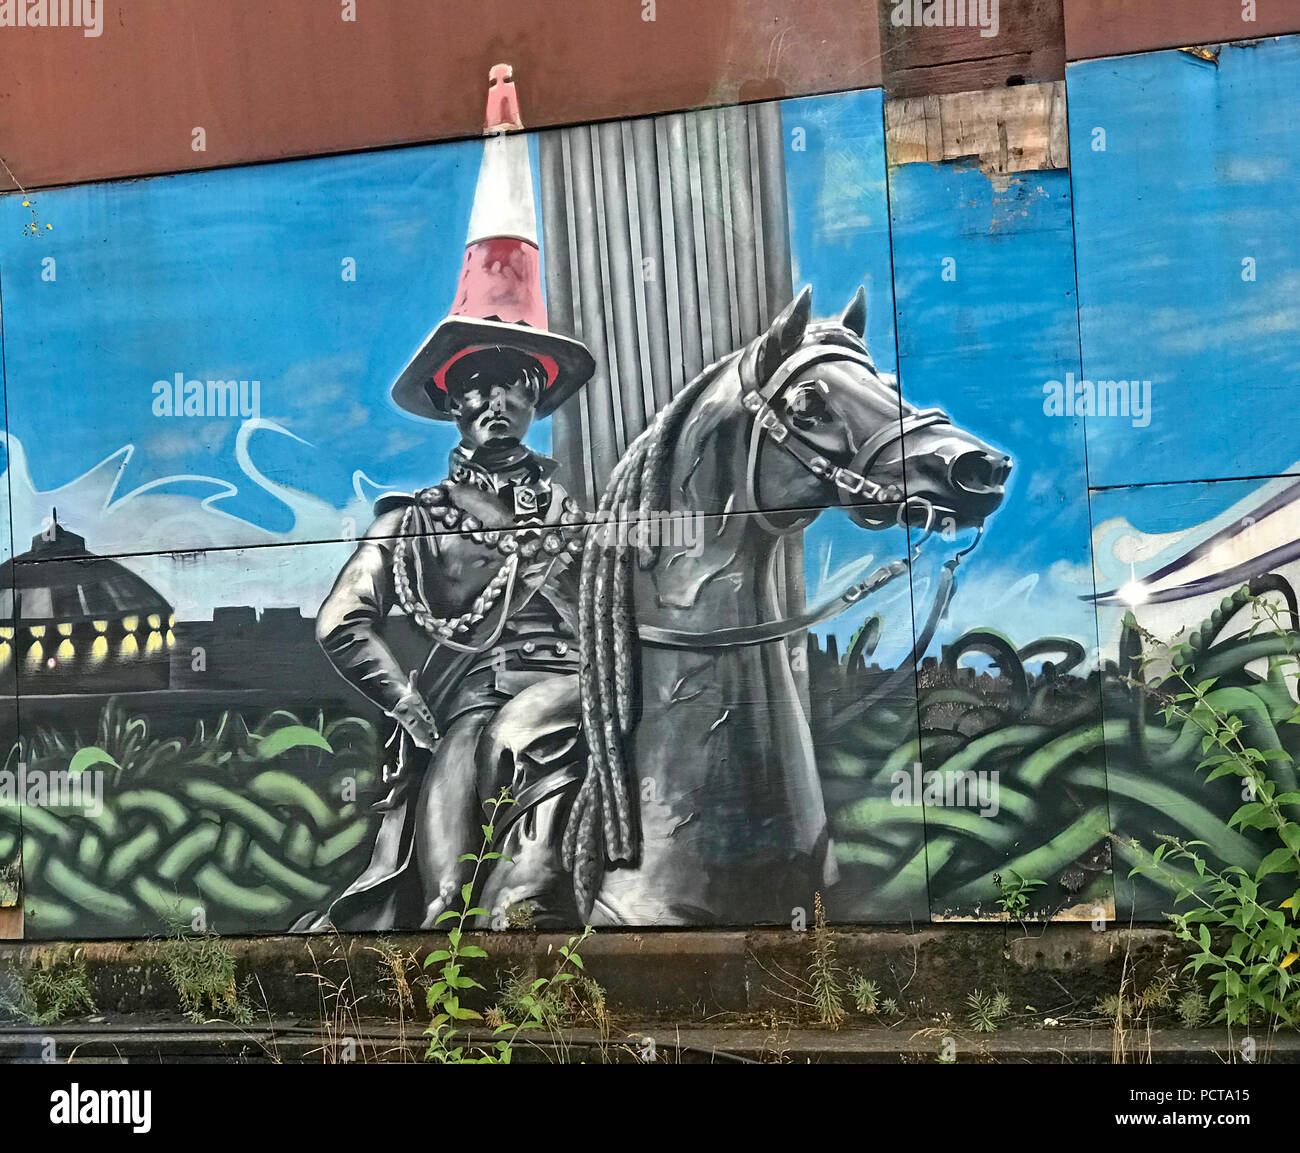 Duke of Wellington Traffic Cone graffitti artwork, Glasgow Central station, Strathclyde, Scotland, UK - Stock Image